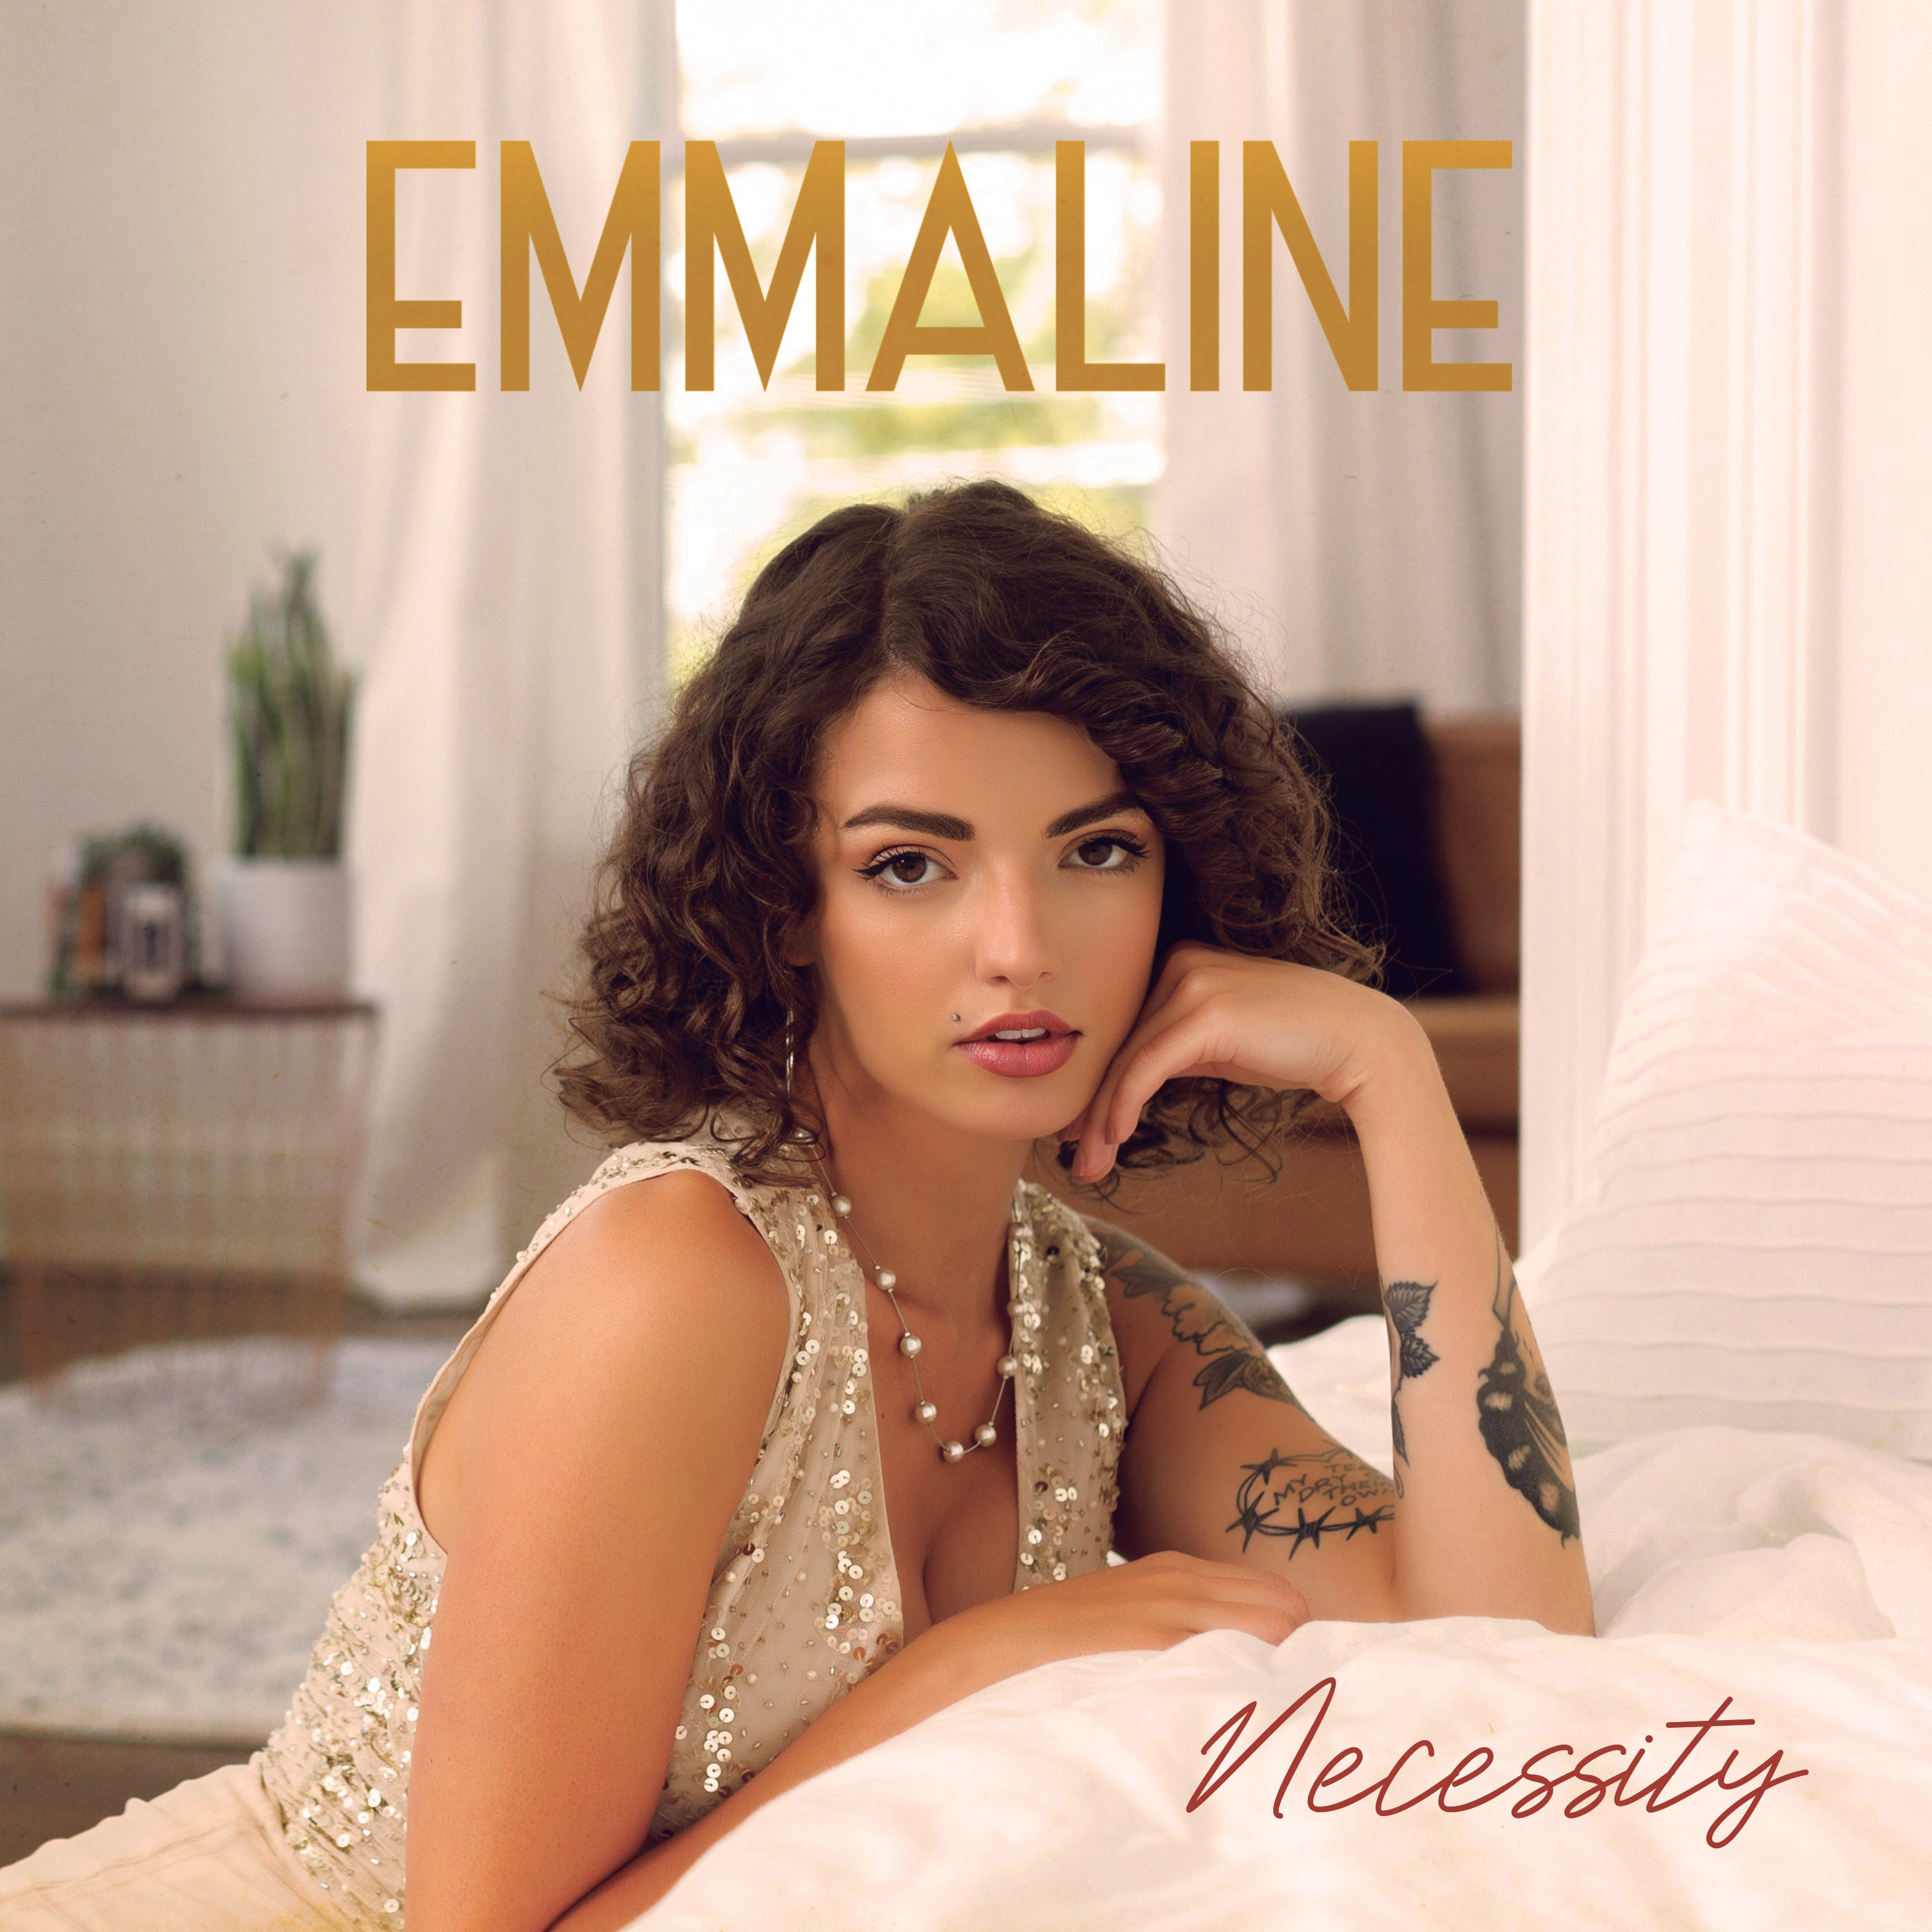 NECESSITY CD *EXCLUSIVELY SIGNED BY EMMALINE*